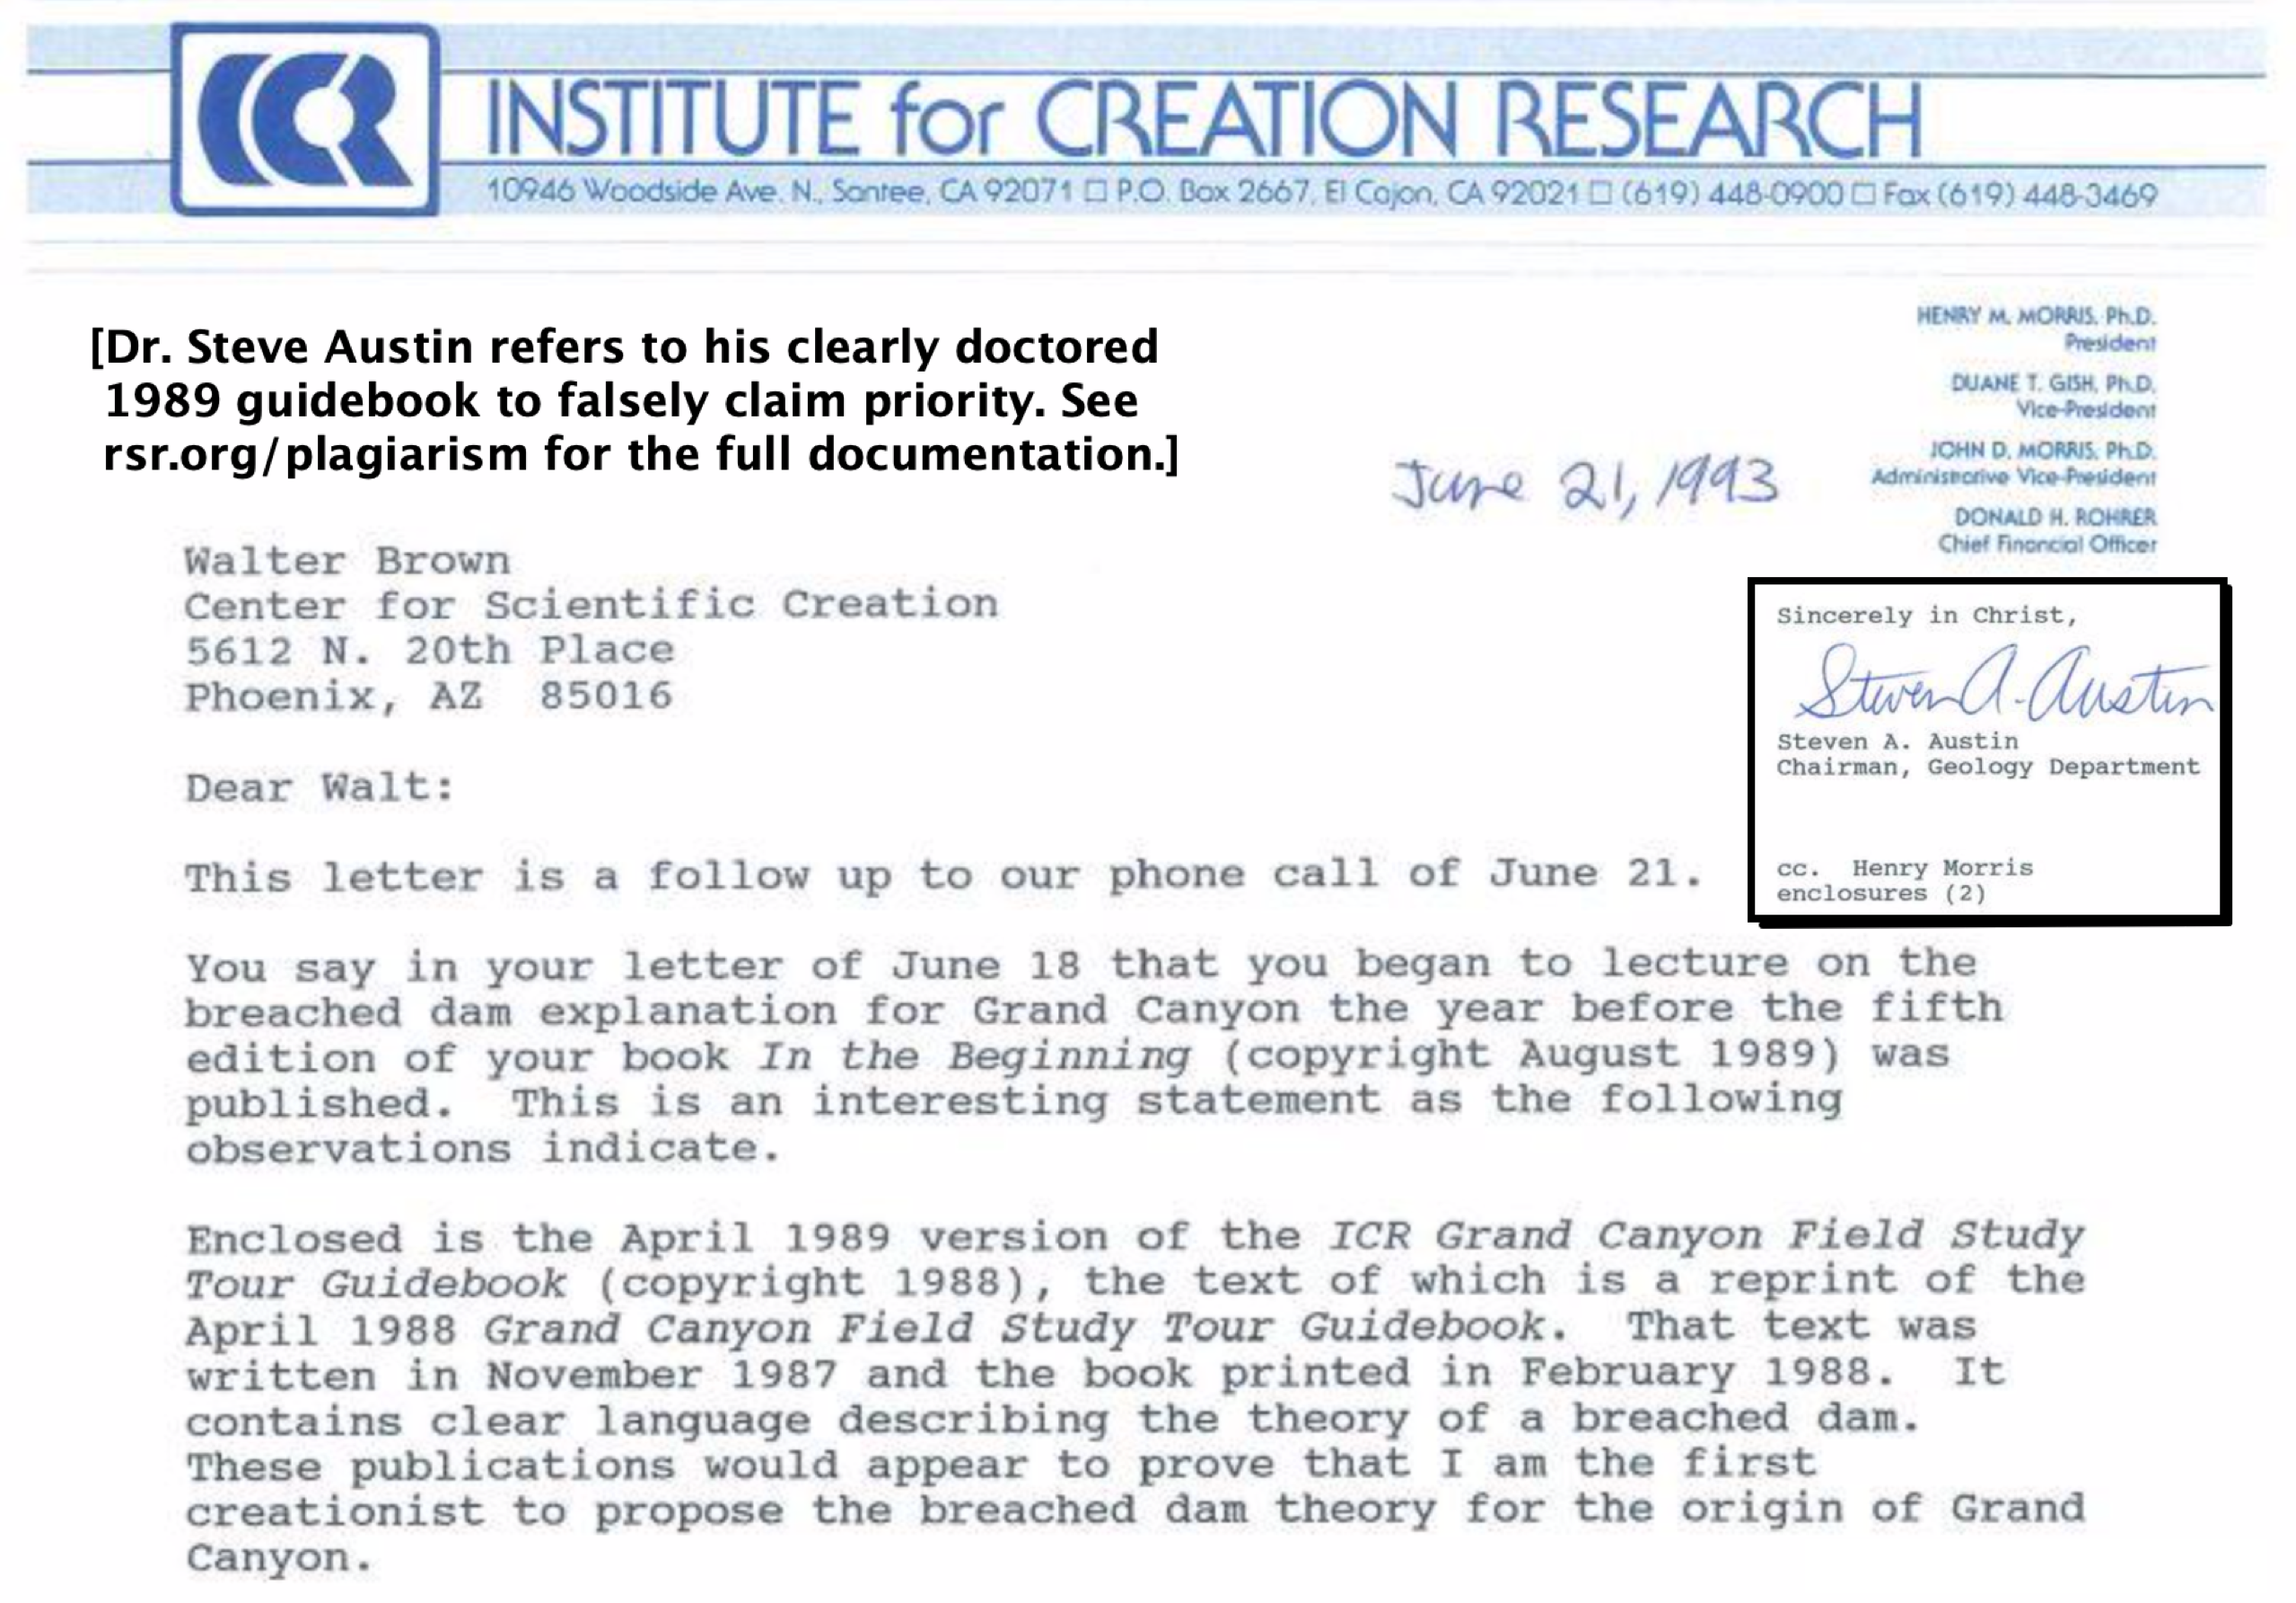 ICR geologist Steve Austin referring to his (clearly doctored) 1989 guidebook to claim priority...